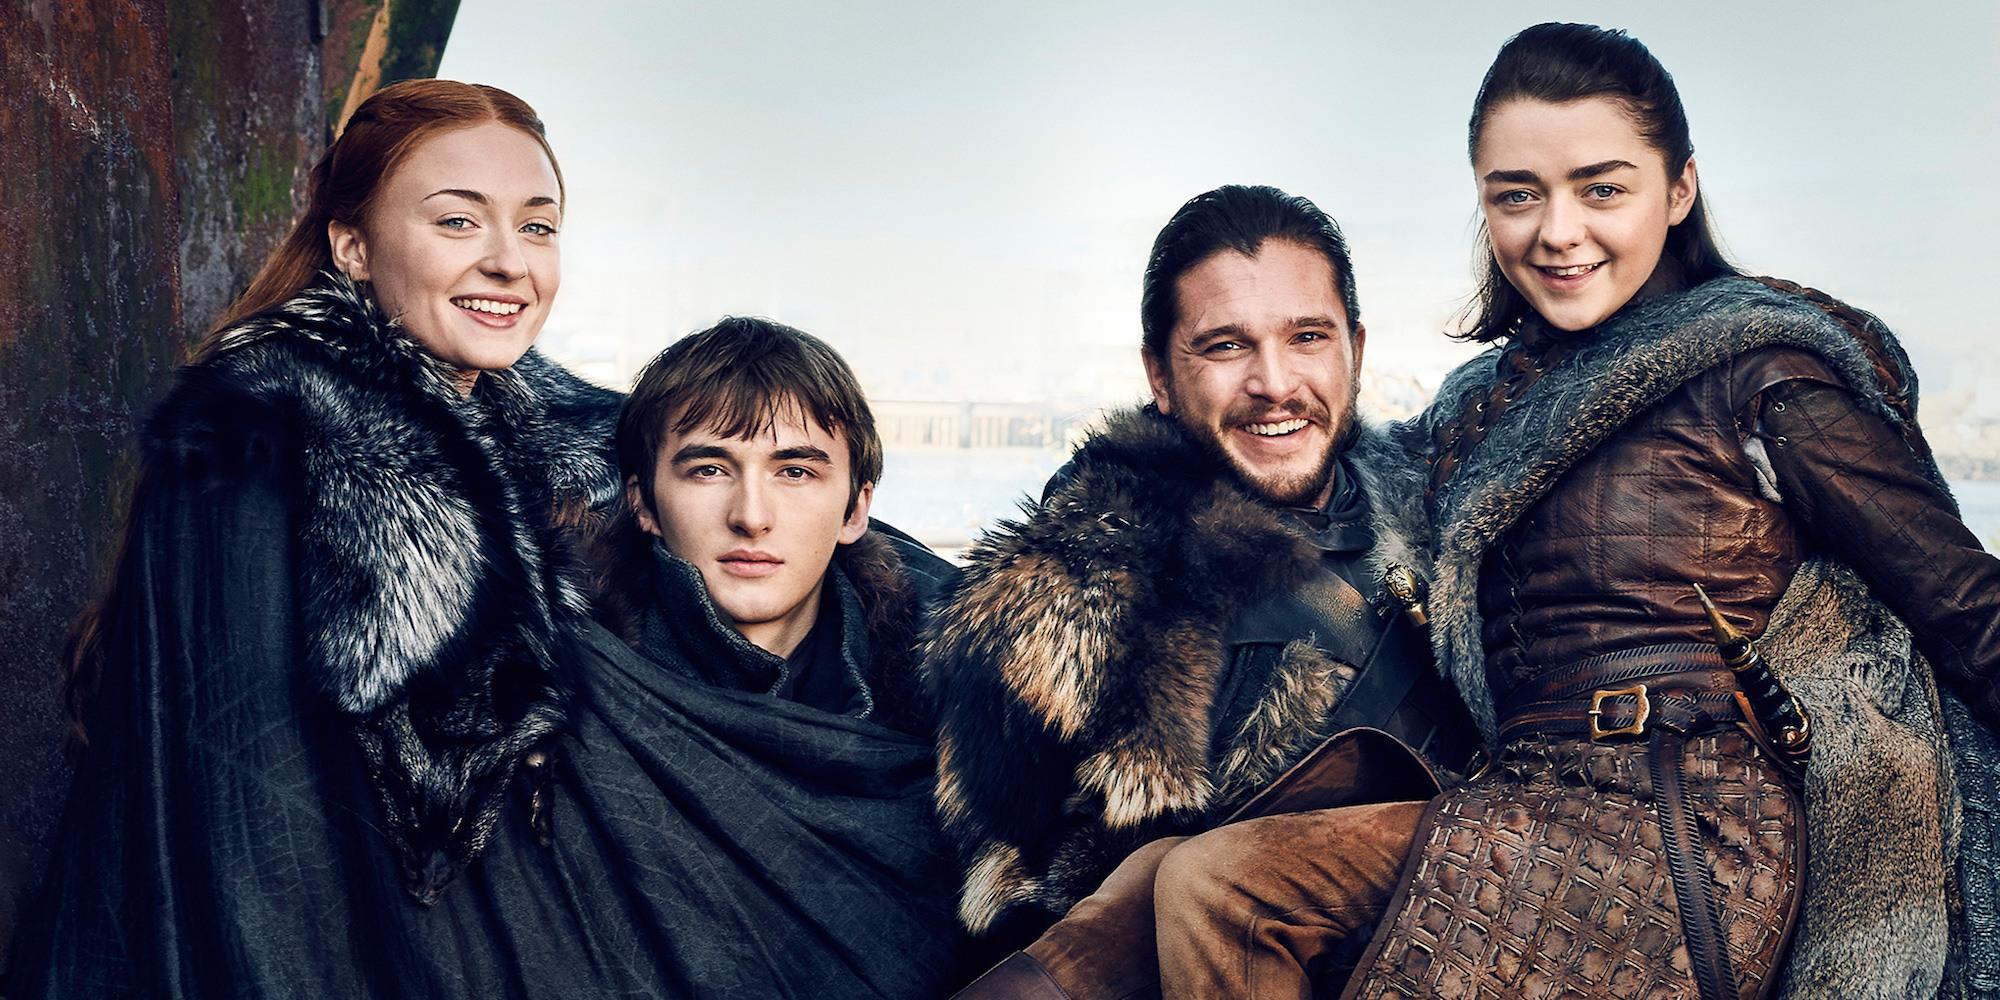 Game of Thrones photoshoot - photos that you have not seen